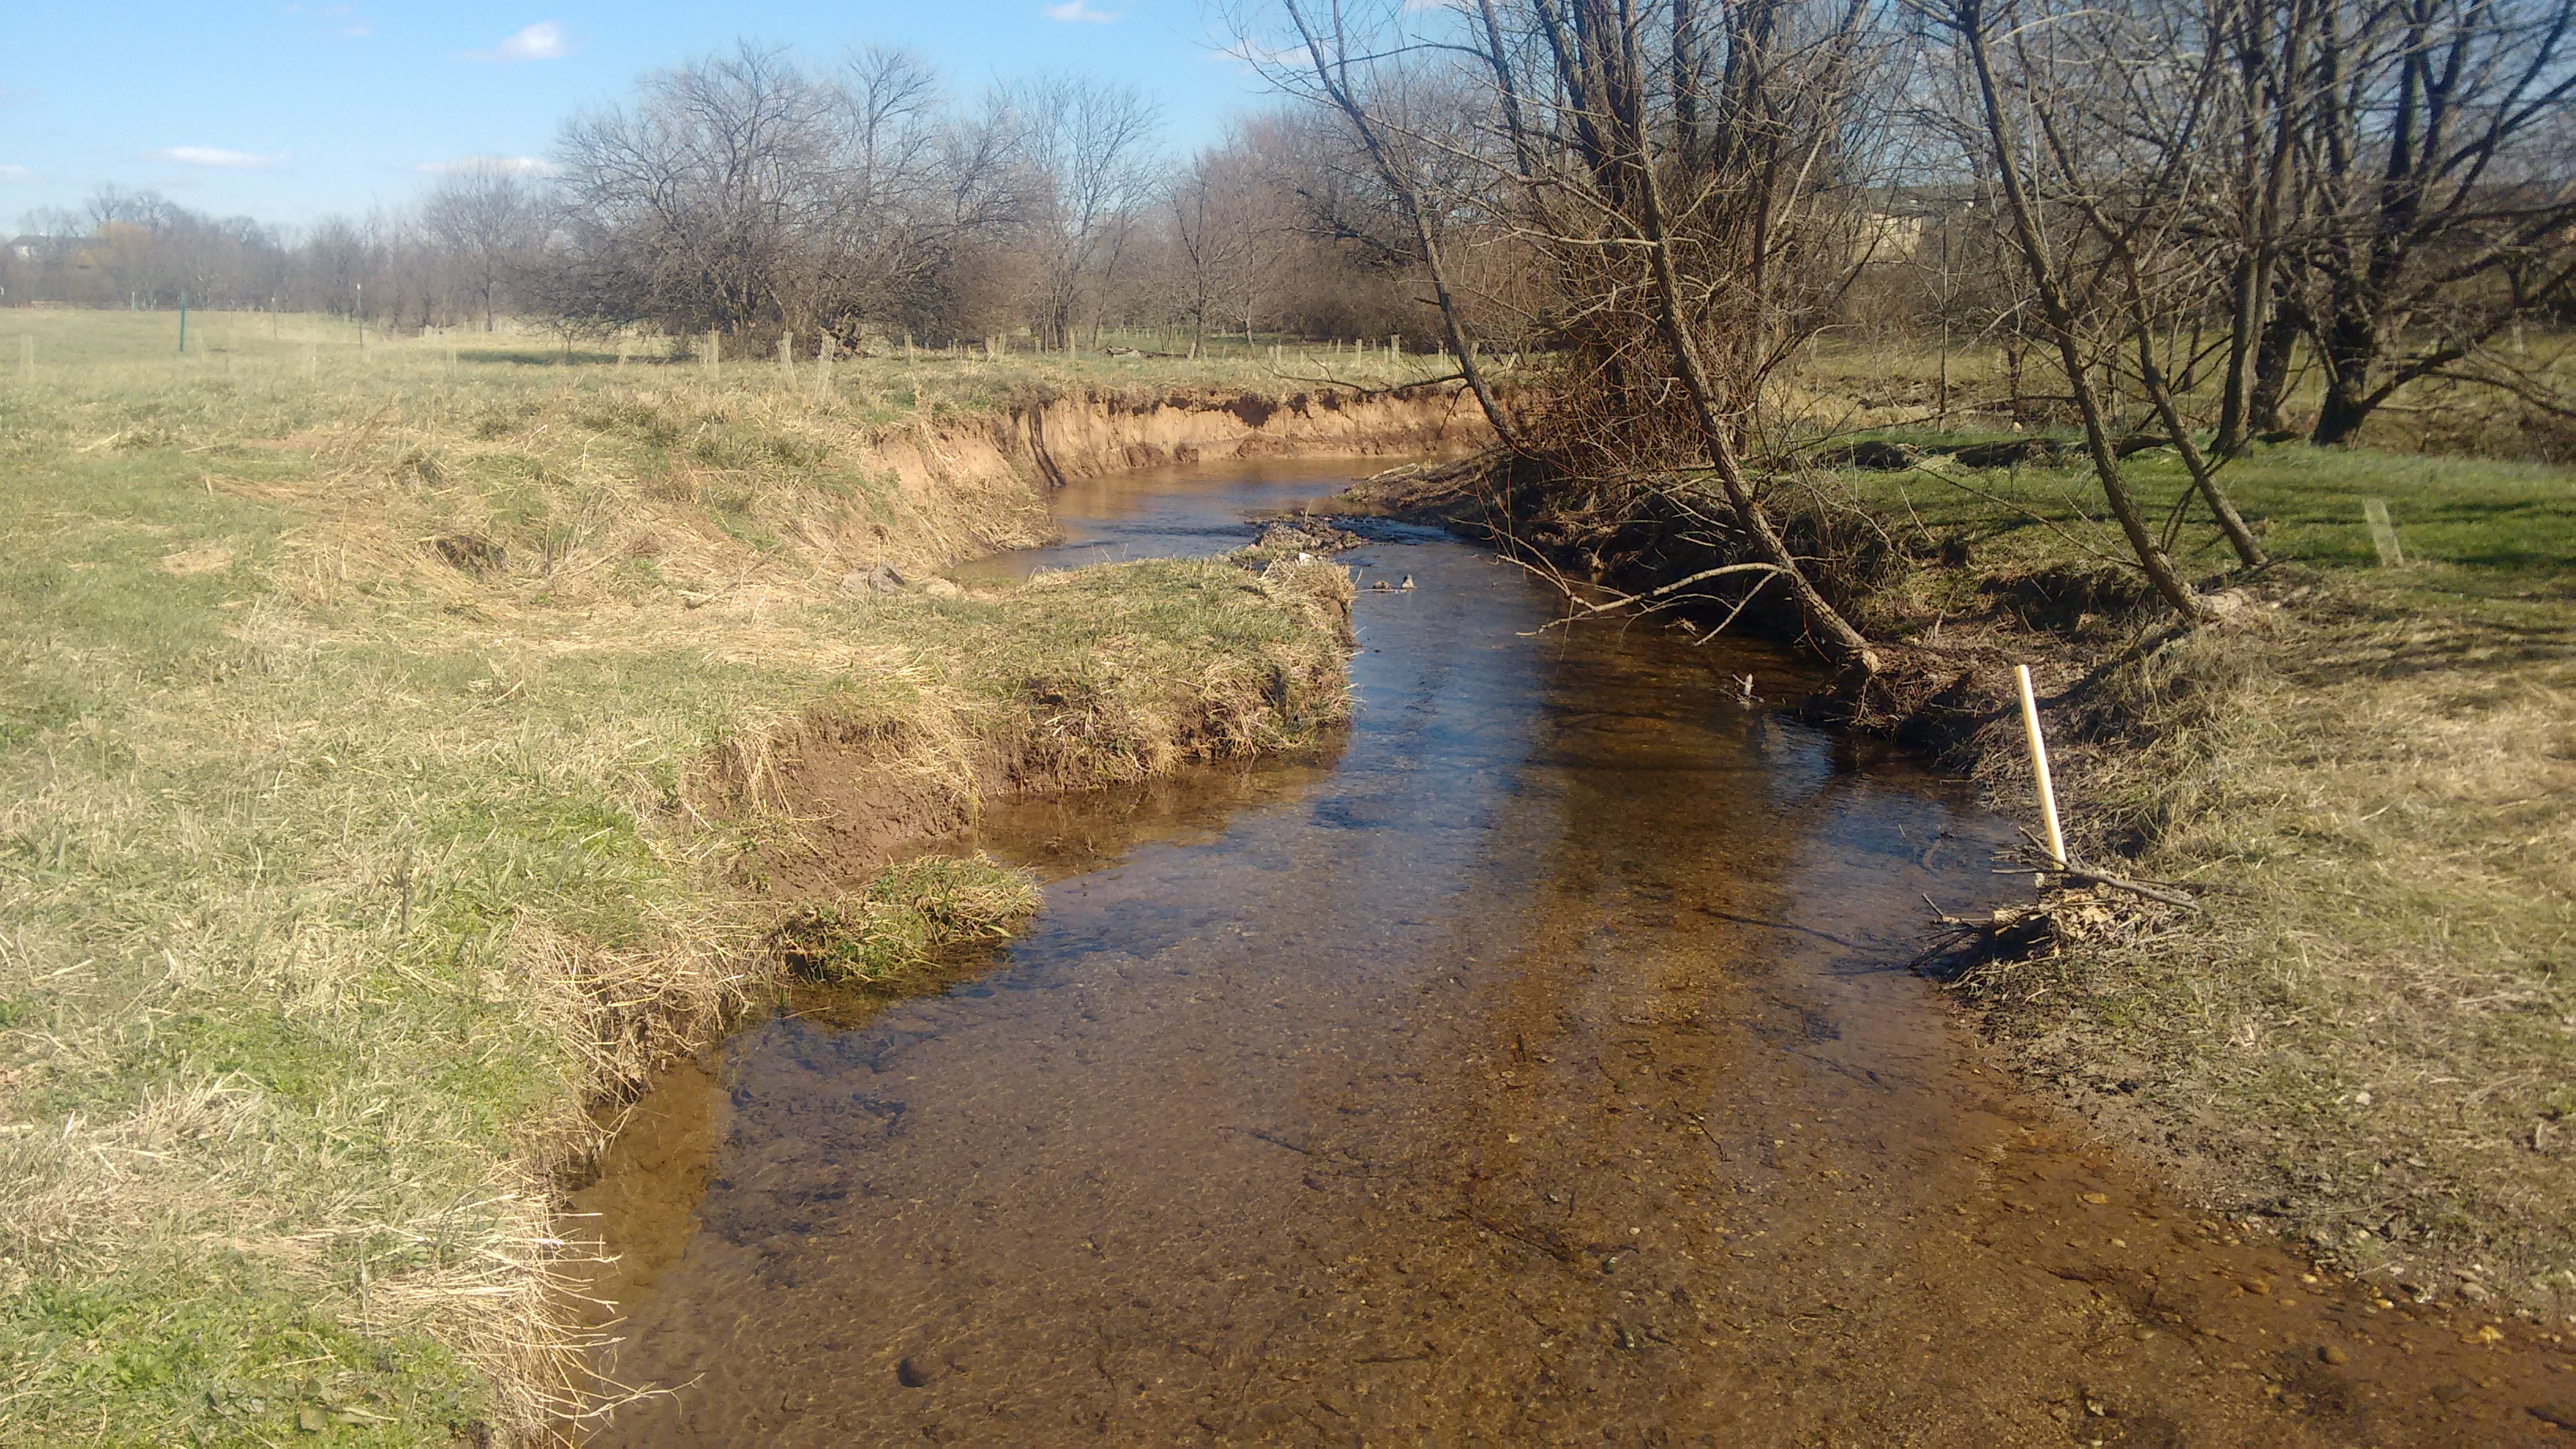 A picture of Little Tuscarora Creek in Frederick County. The banks are slightly eroded.  Several mature trees are leaning over toward the water on the left, while newly-planted trees are on the right.